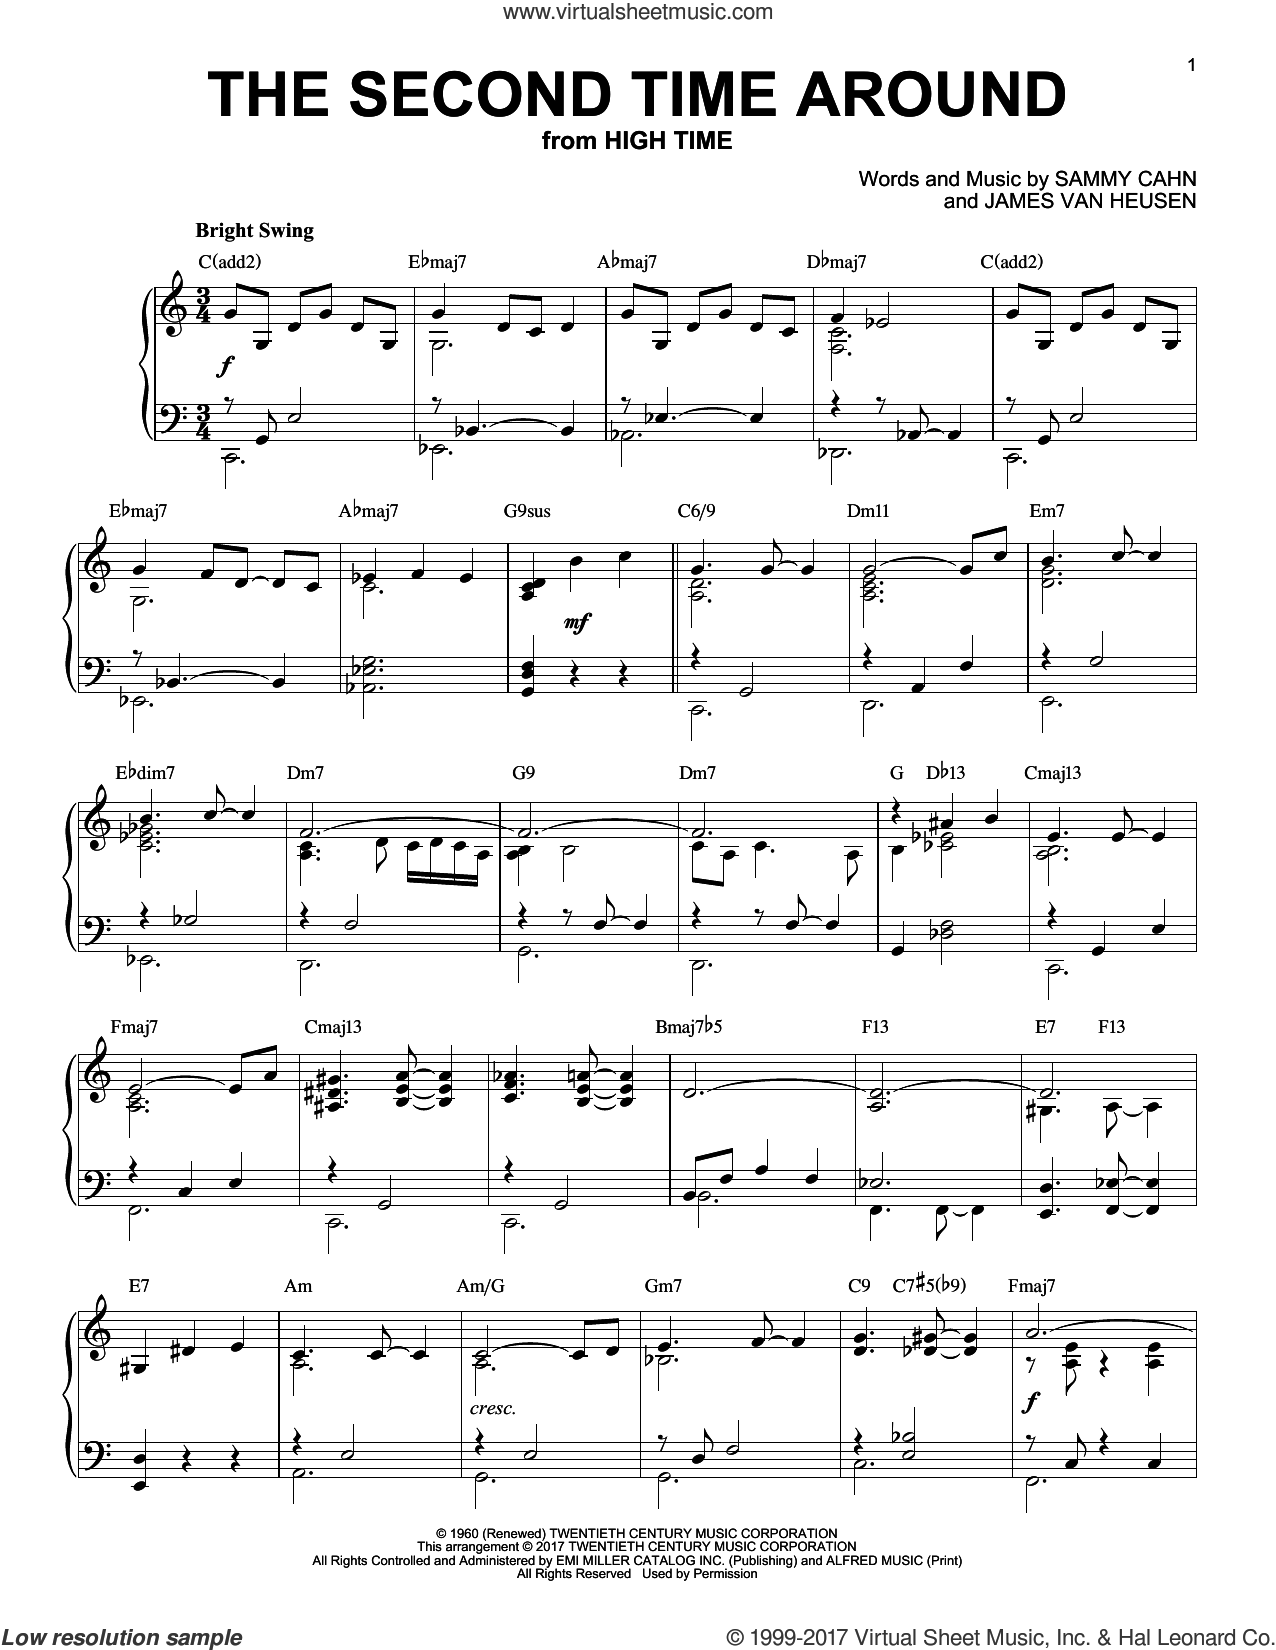 The Second Time Around sheet music for piano solo by Sammy Cahn and Jimmy van Heusen, intermediate skill level